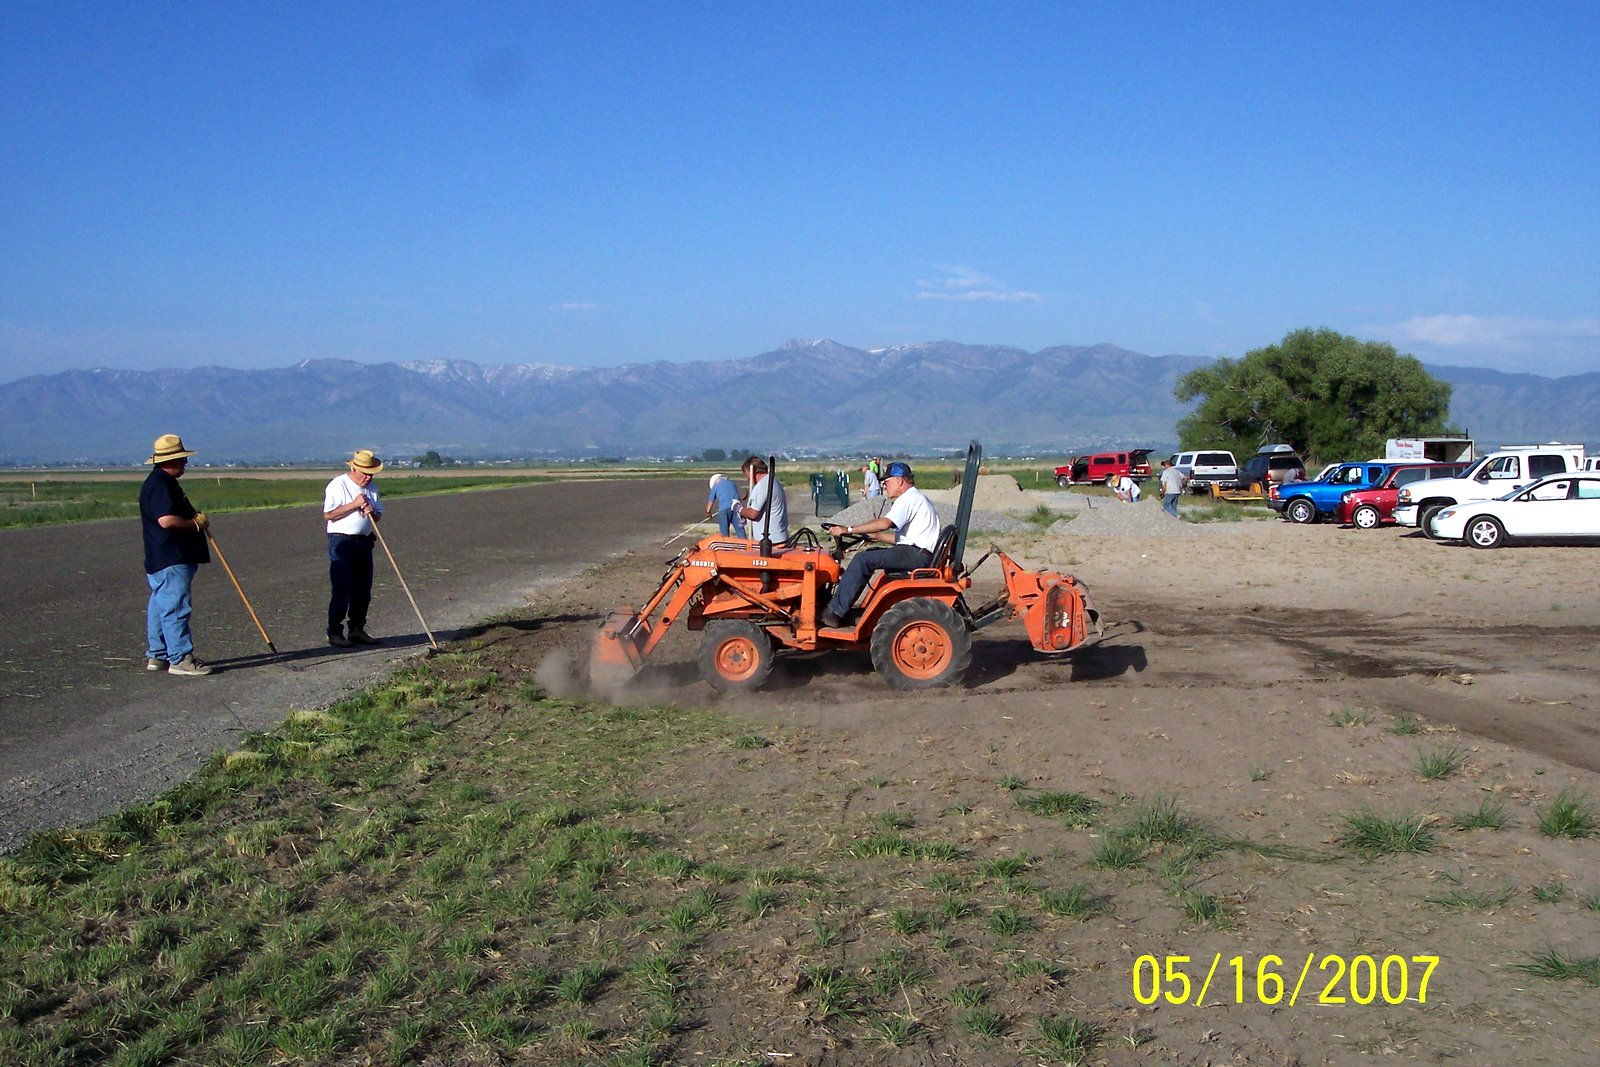 DEL BULLEN BEGINS TAPERING RUNWAY EDGES. MICHAEL SMITH, NATE FREIDLI AND RICK JENSEN DO THE RAKING.